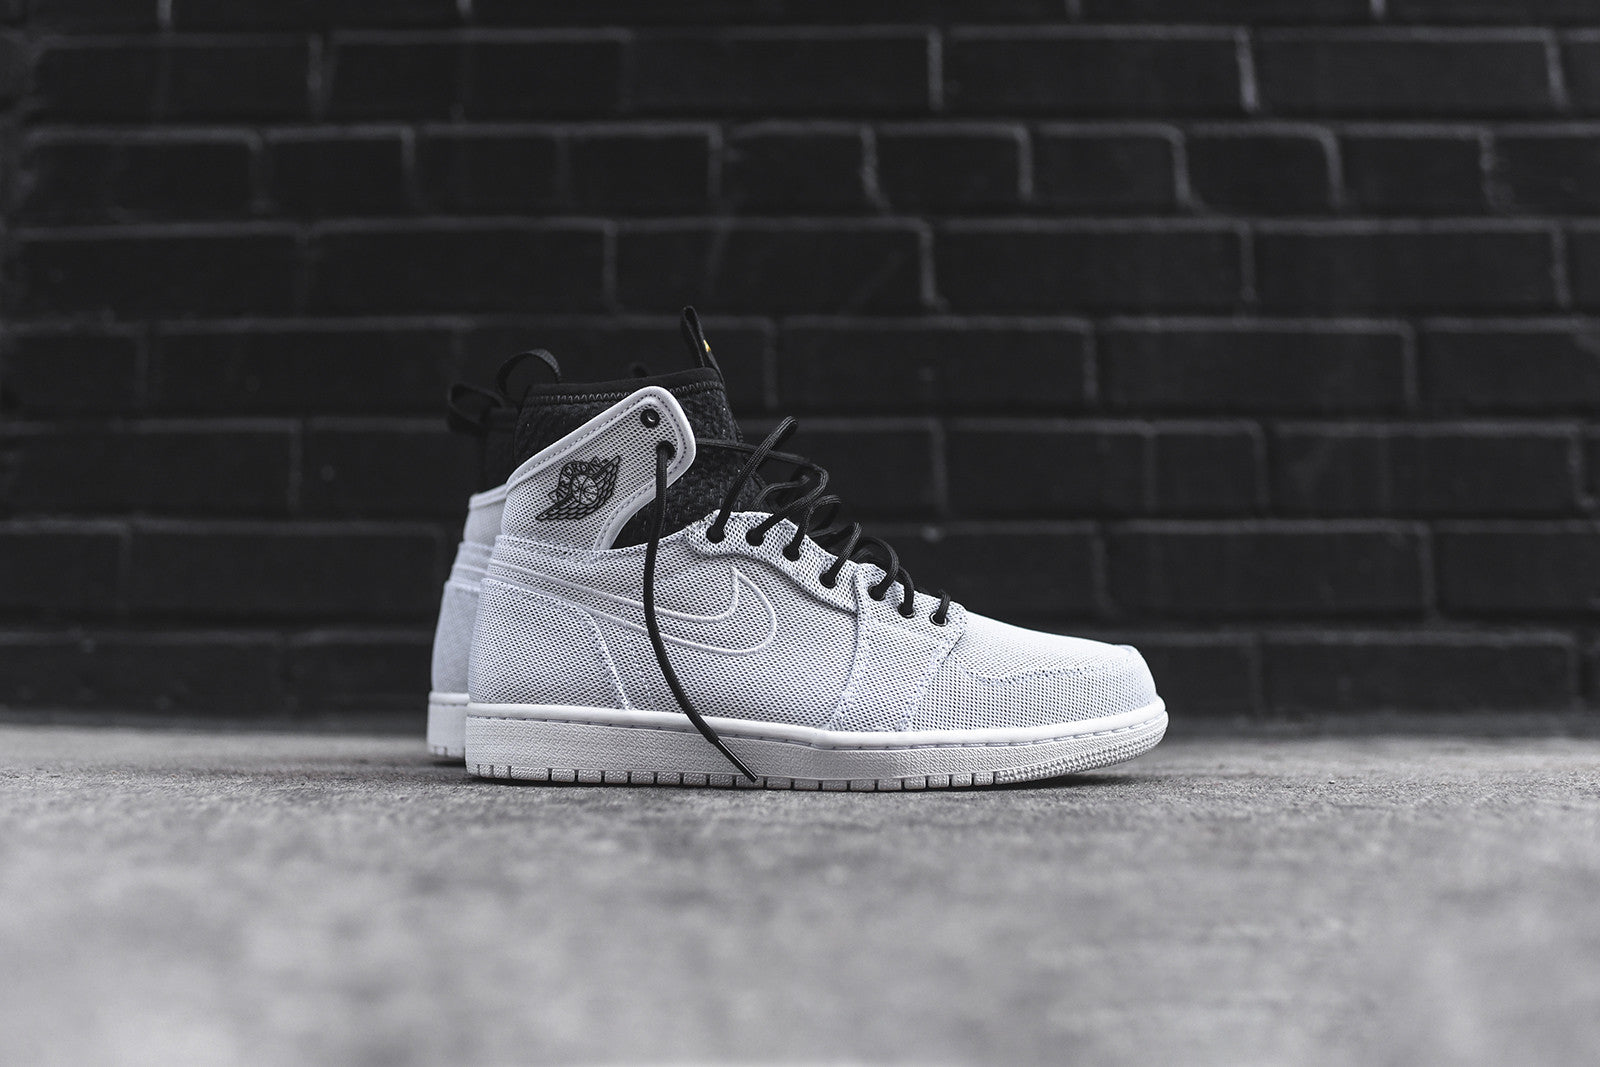 Nike Air Jordan 1 Ultra High - White